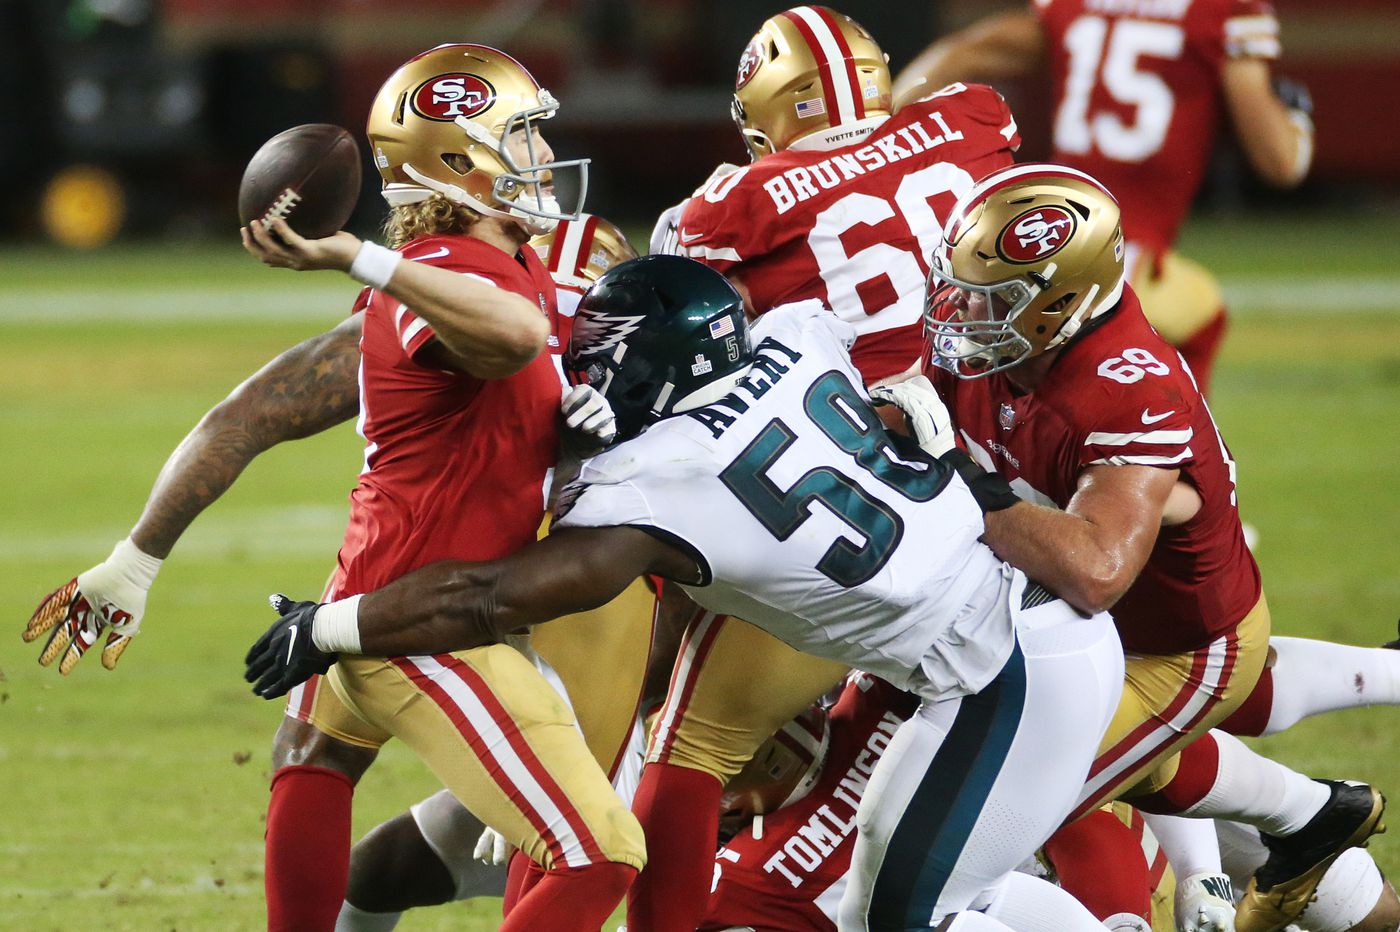 Five reasons why the Eagles beat the 49ers, elevating them to first place in the NFC East